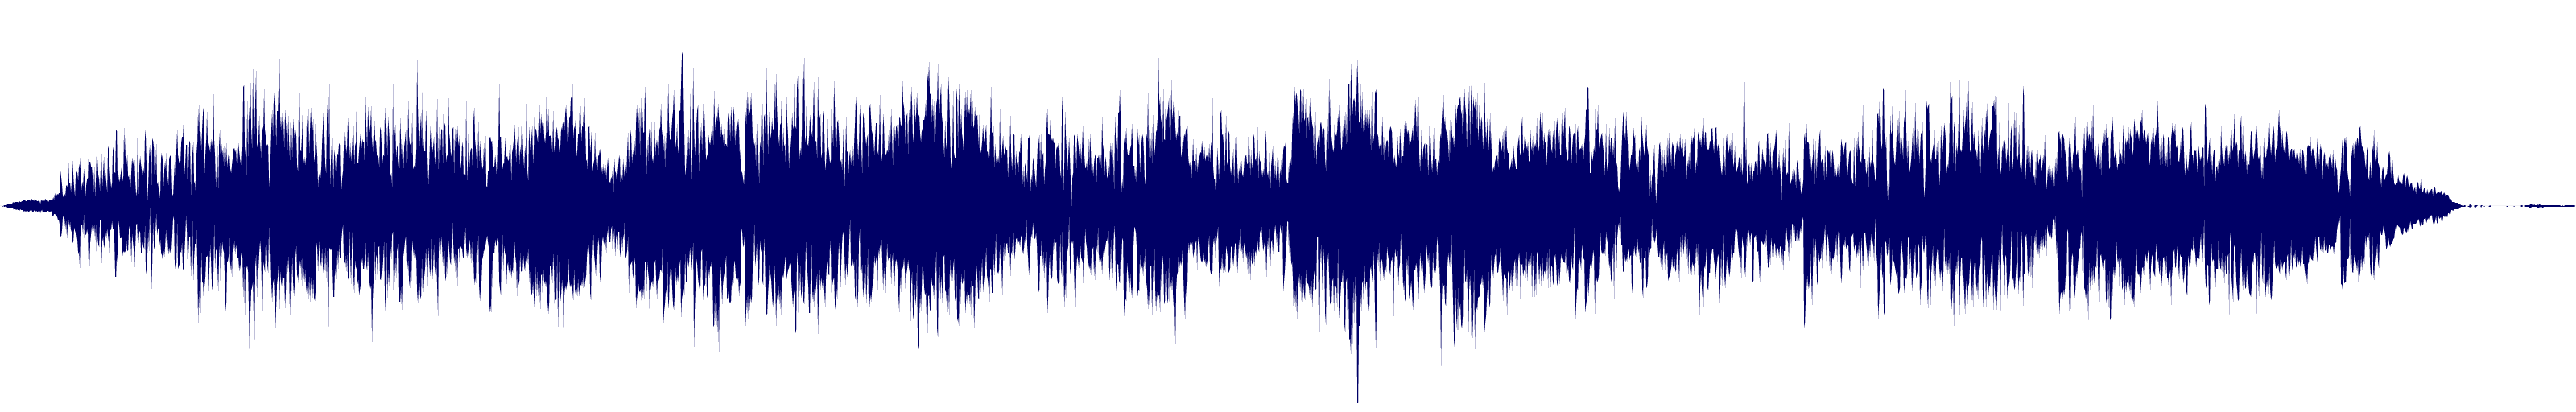 waveform of track #110822